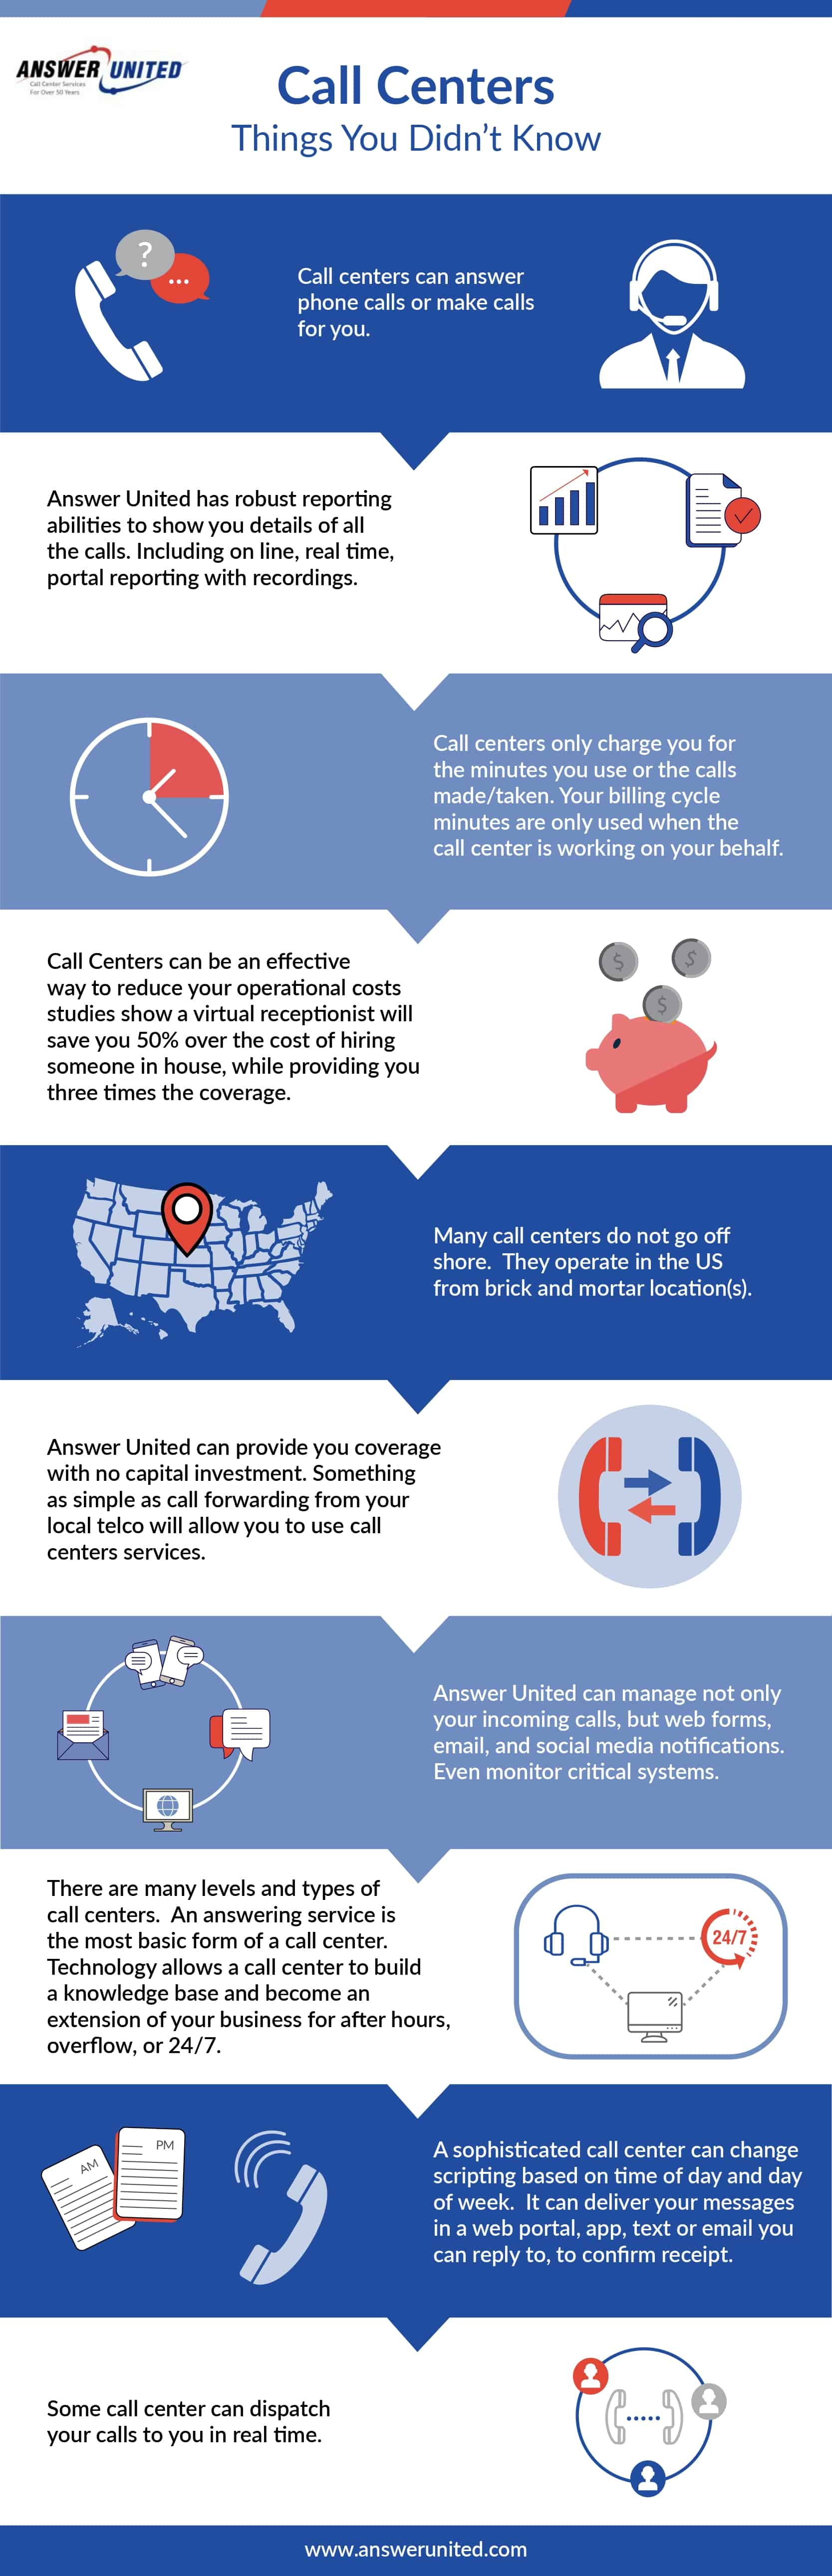 Things You Didn't Know About Call Centers